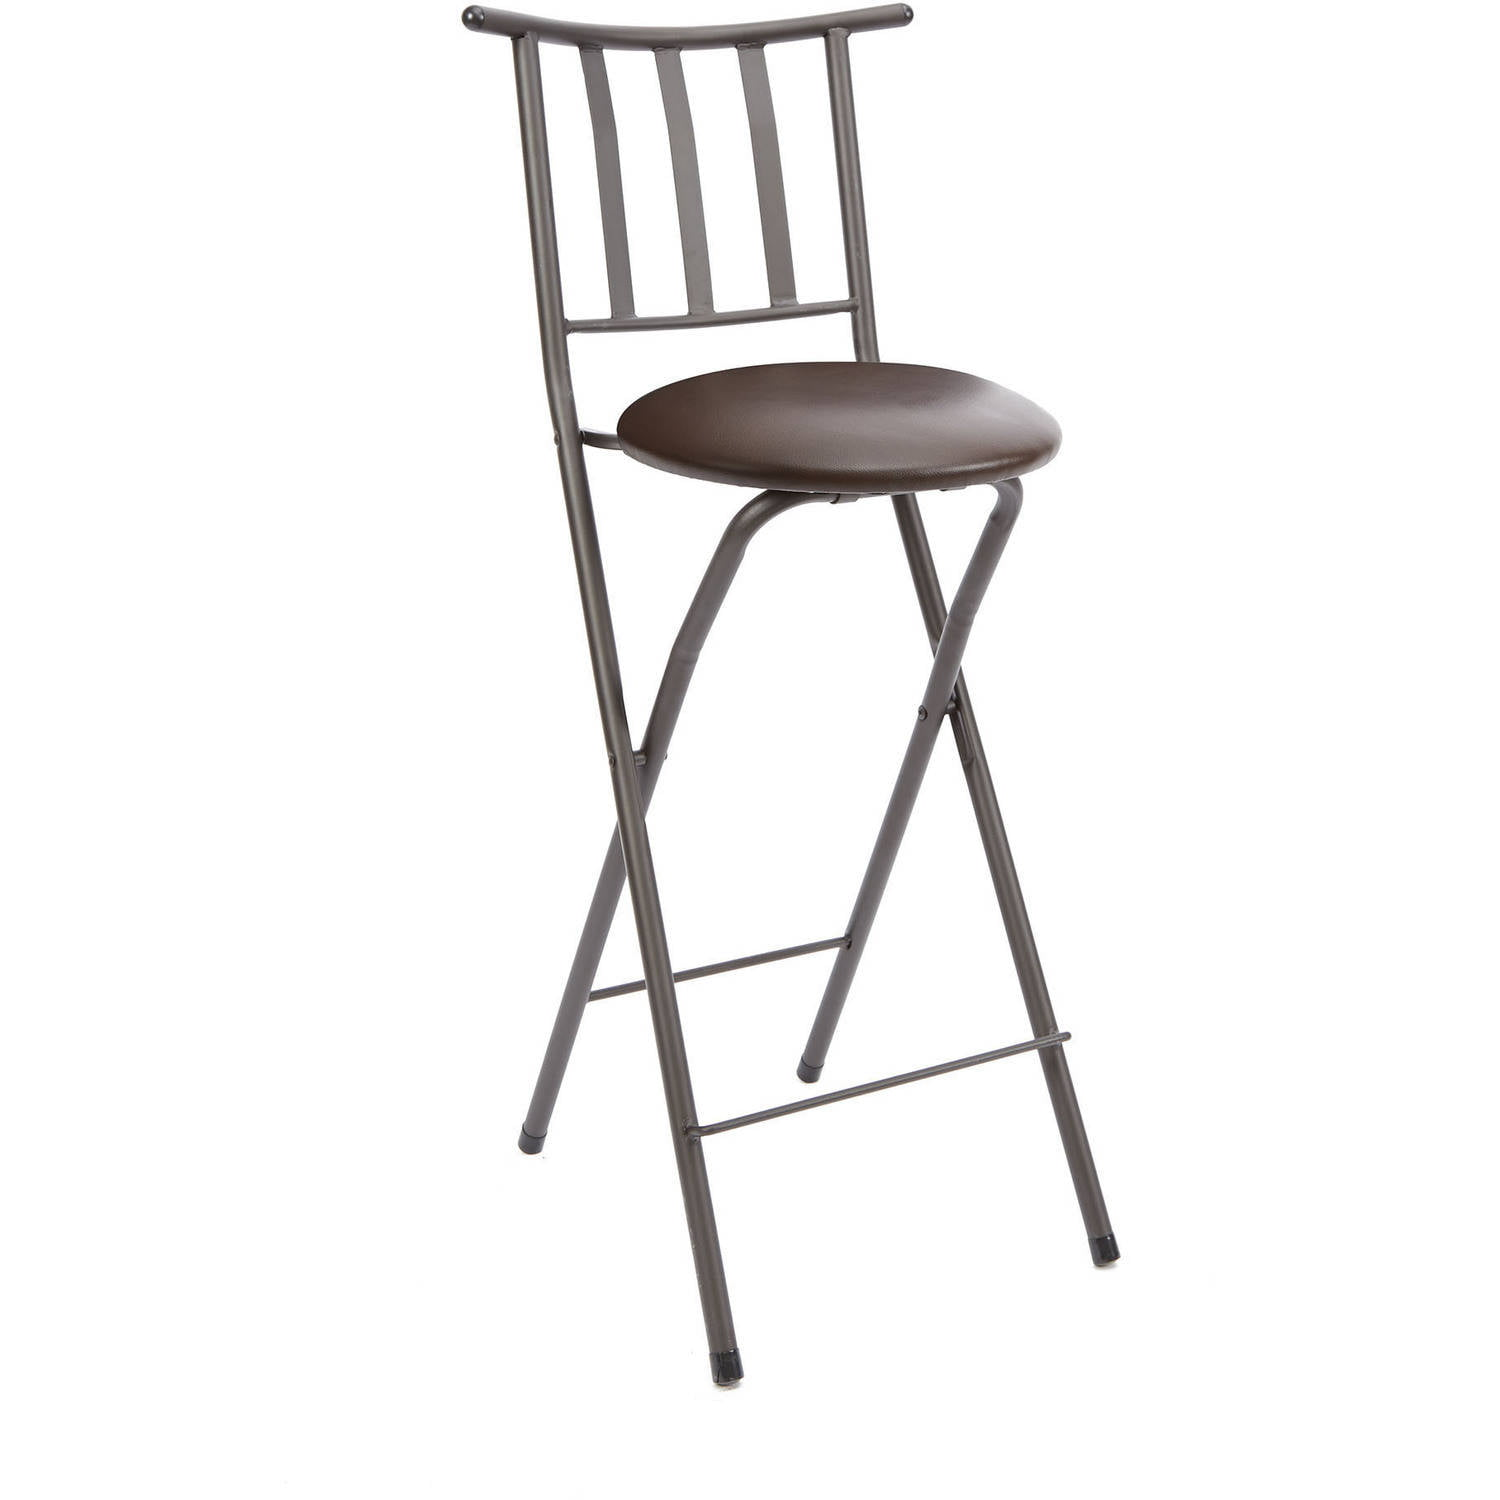 Excellent Mainstays Slat Back Folding 30 Bronze Bar Stool Multiple Colors Ocoug Best Dining Table And Chair Ideas Images Ocougorg